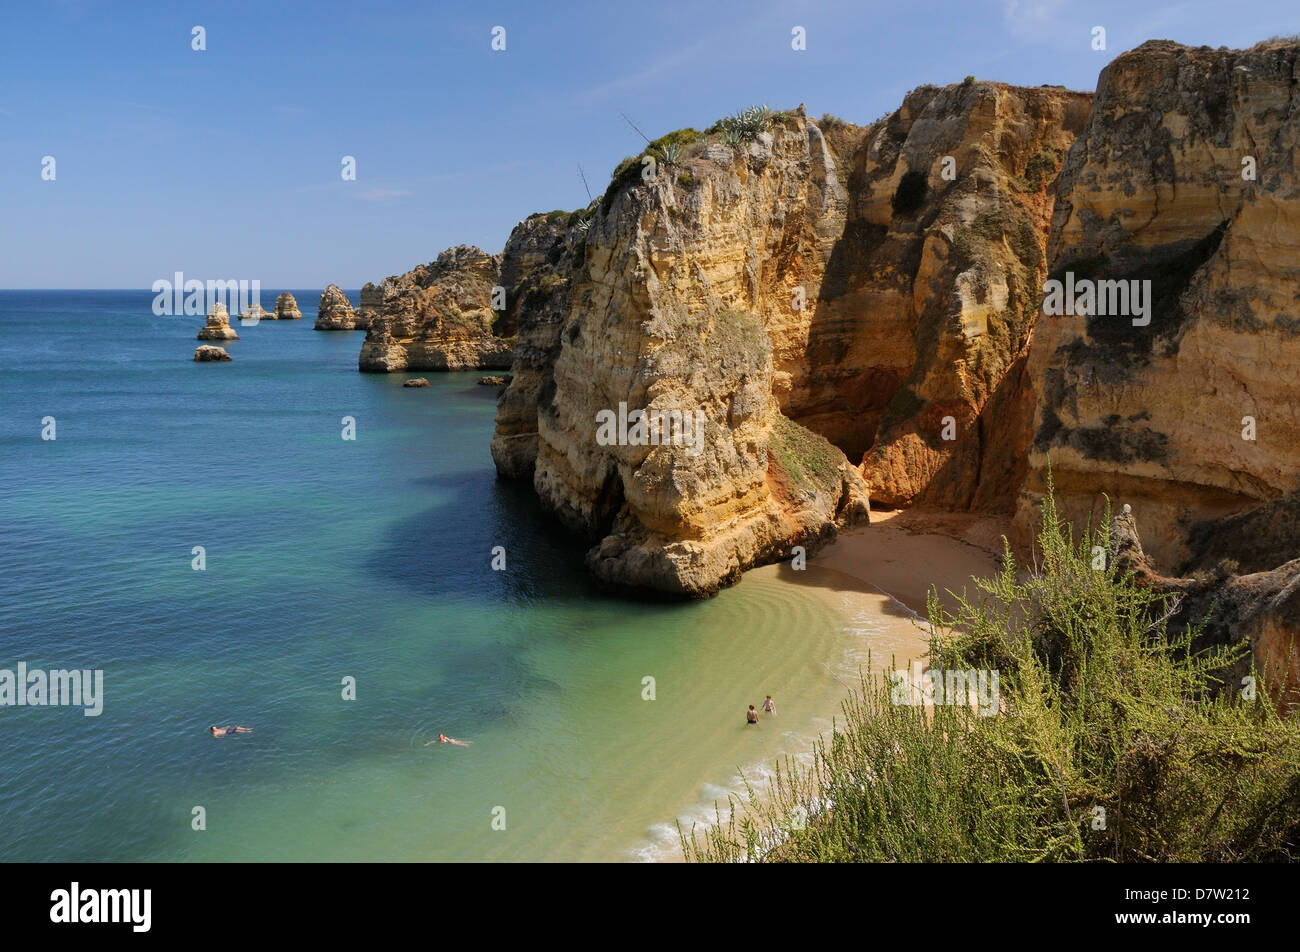 Weathered sandstone cliffs and sea stacks at Praia Dona Ana, Lagos, Algarve, Portugal - Stock Image